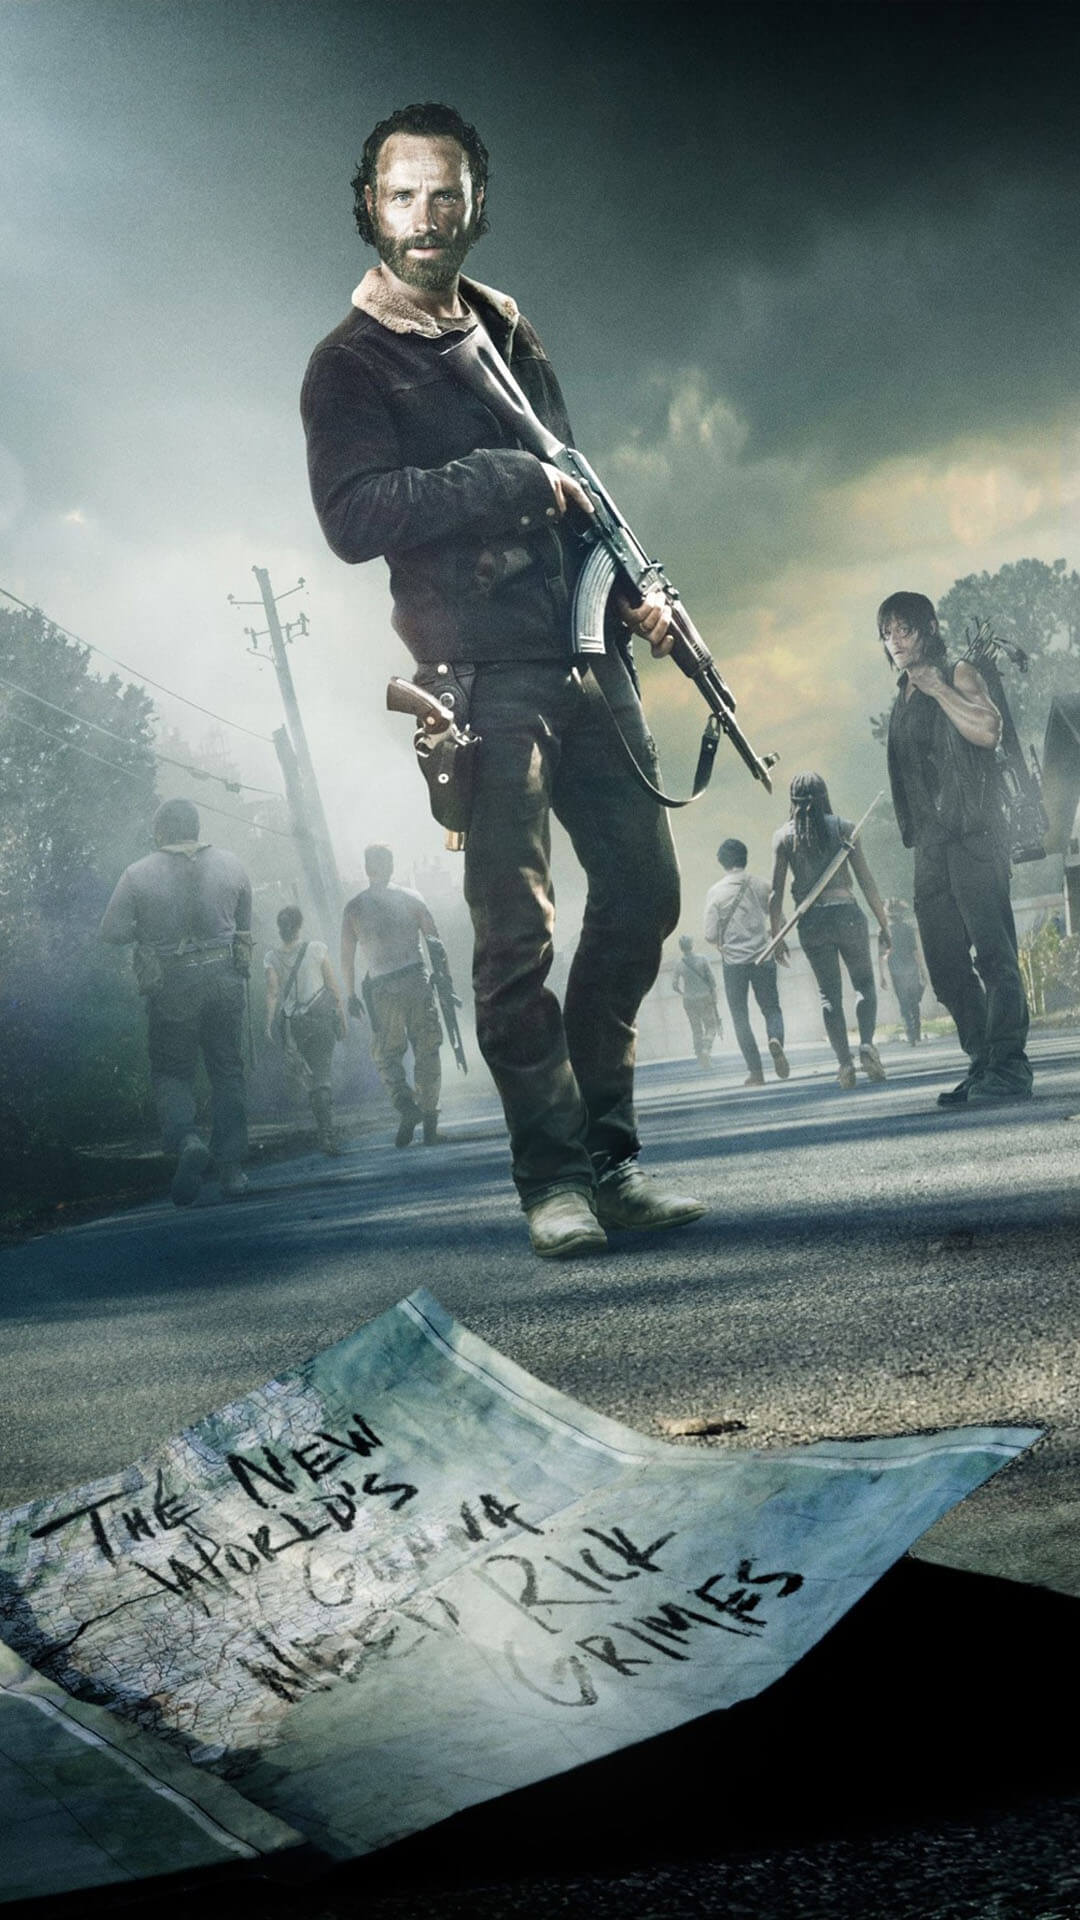 the walking dead wallpaper fond ecran iphone 7 plus 3